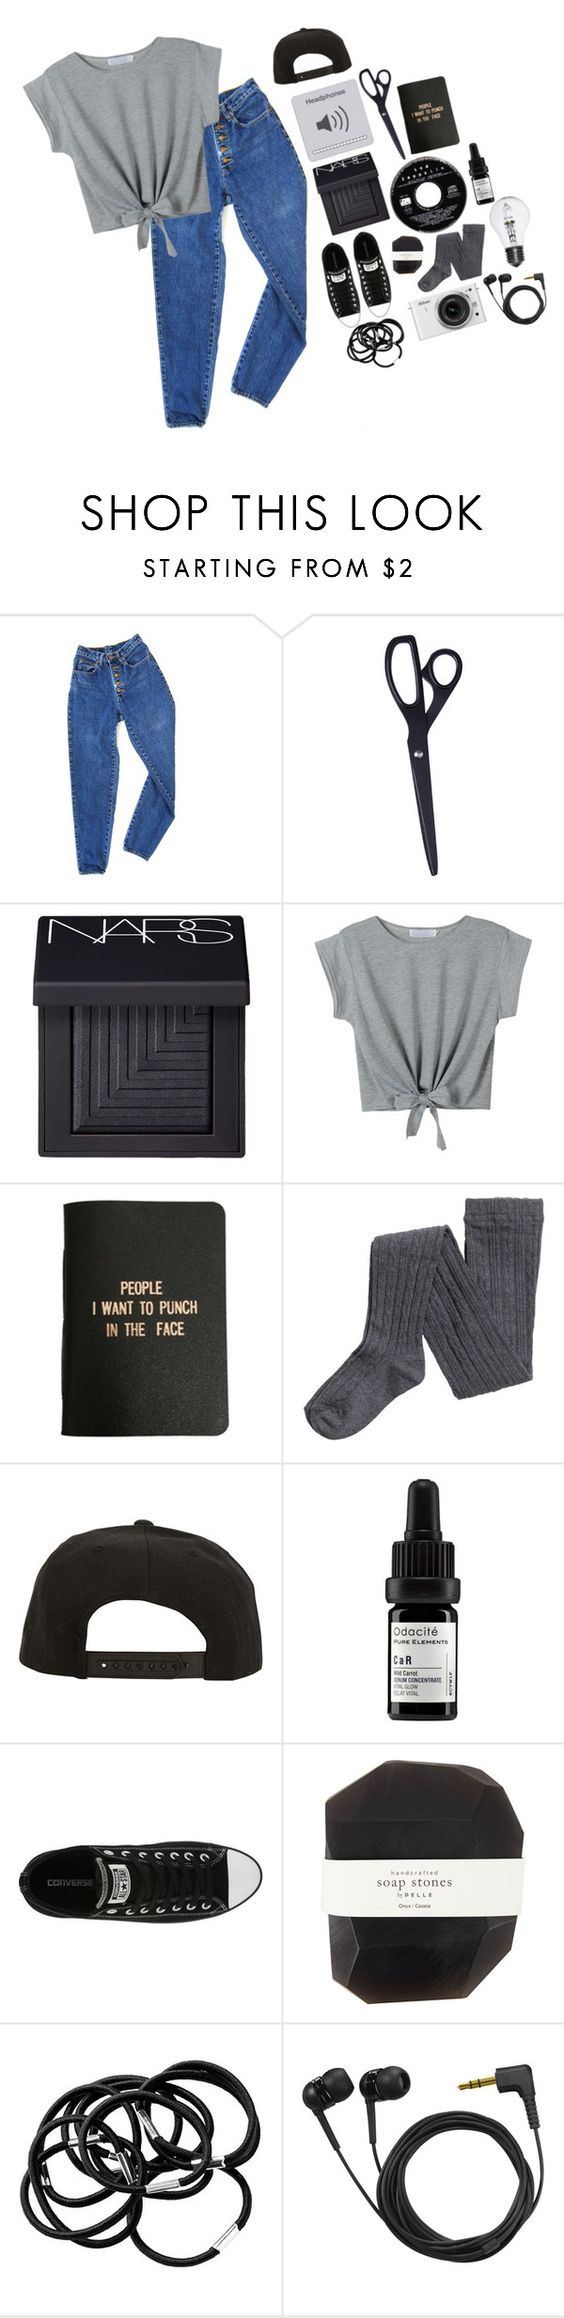 """Unique, just like everyone else"" by seals23 ❤ liked on Polyvore featuring PèPè, HAY, NARS Cosmetics, WithChic, Roark, Odacité, Converse, Nikon, Pelle and H&M"